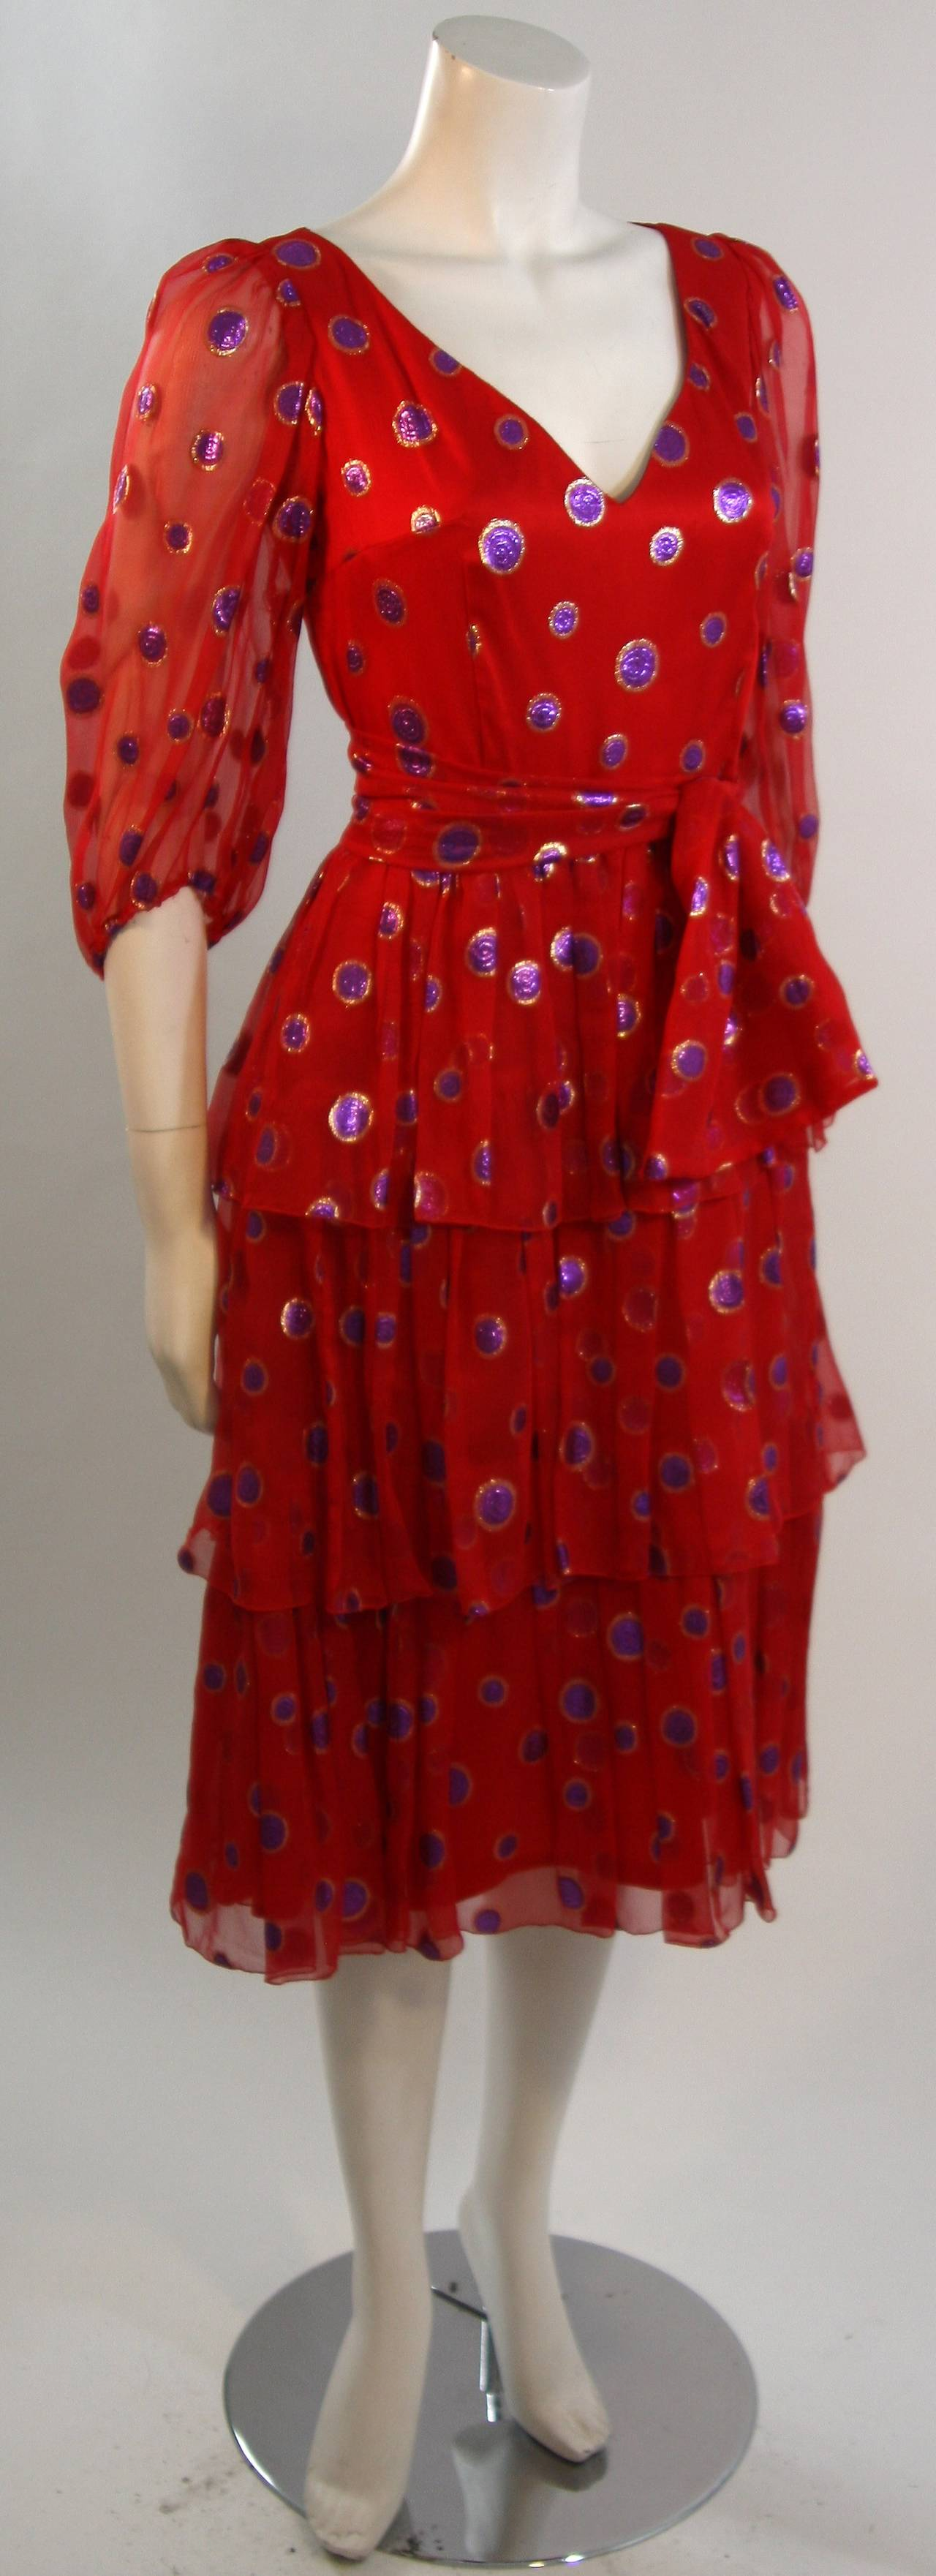 1970's Custom Made Red Silk Tired Dress with Purple Metallic Accents 5